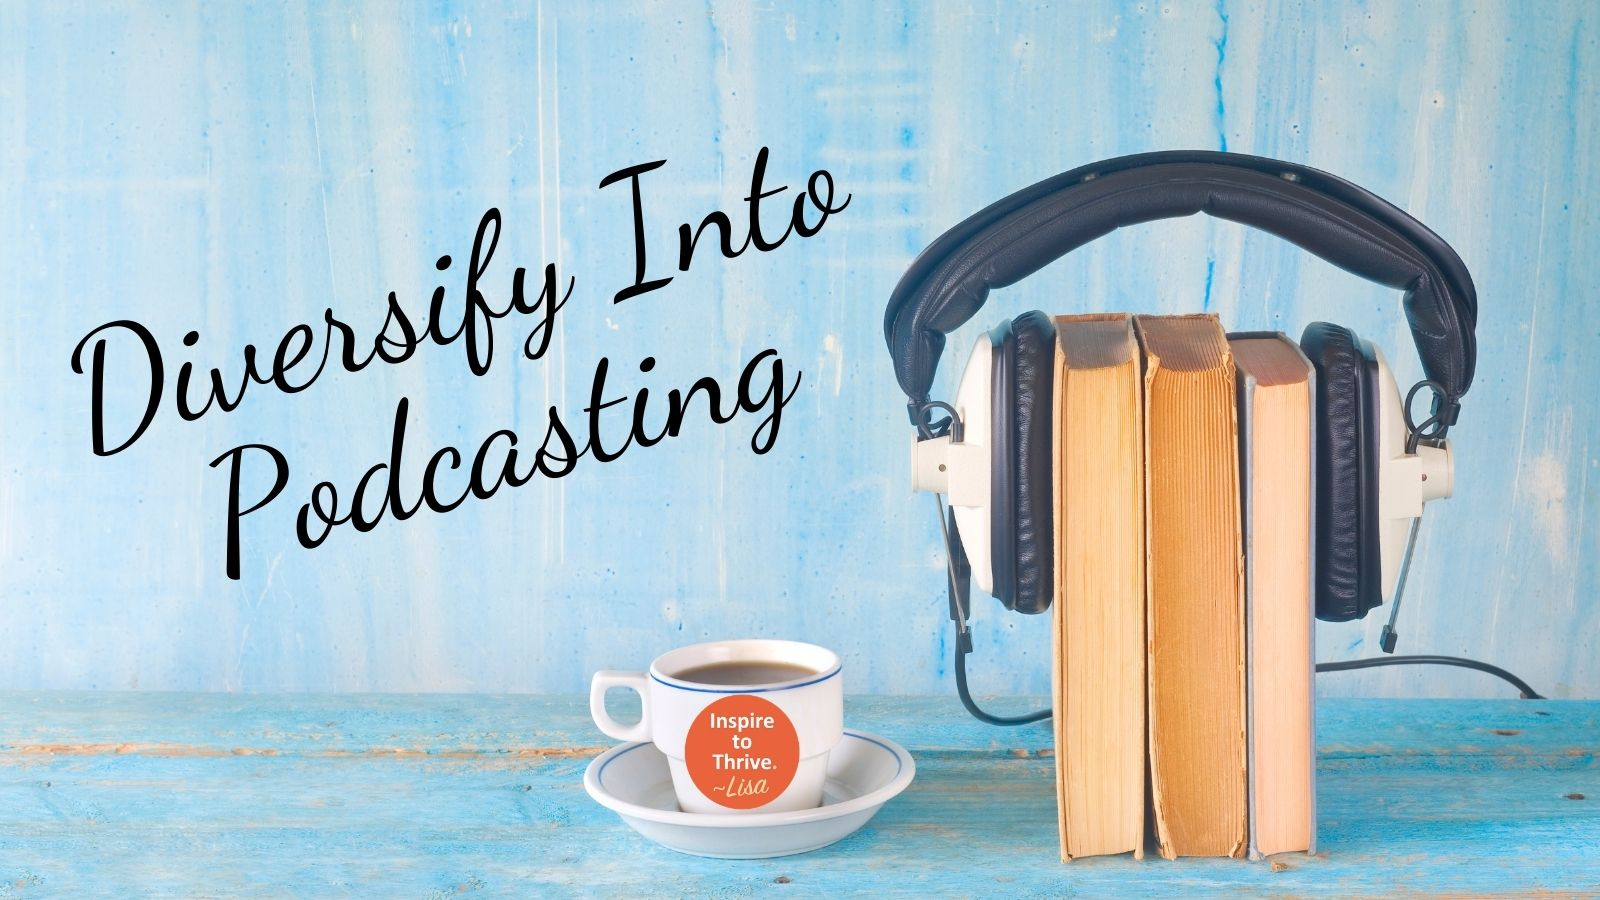 diversify into podcasting